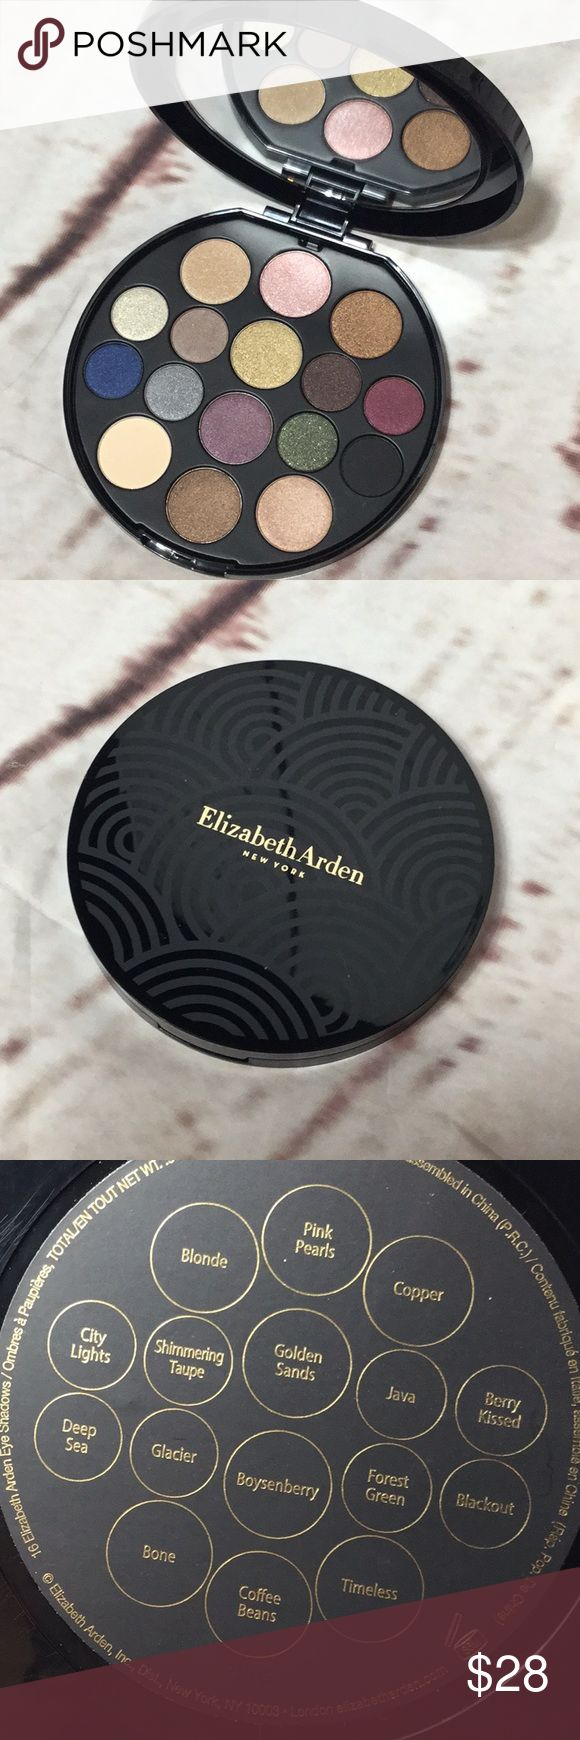 Elizabeth Arden eyeshadow palette never Used Elizabeth Arden eyeshadow palette never Used. Got this in a set for Christmas. I have a similar palette already. Offers welcome. Colors are so pretty names of them are in third pic. No box. Elizabeth Arden Makeup Eyeshadow